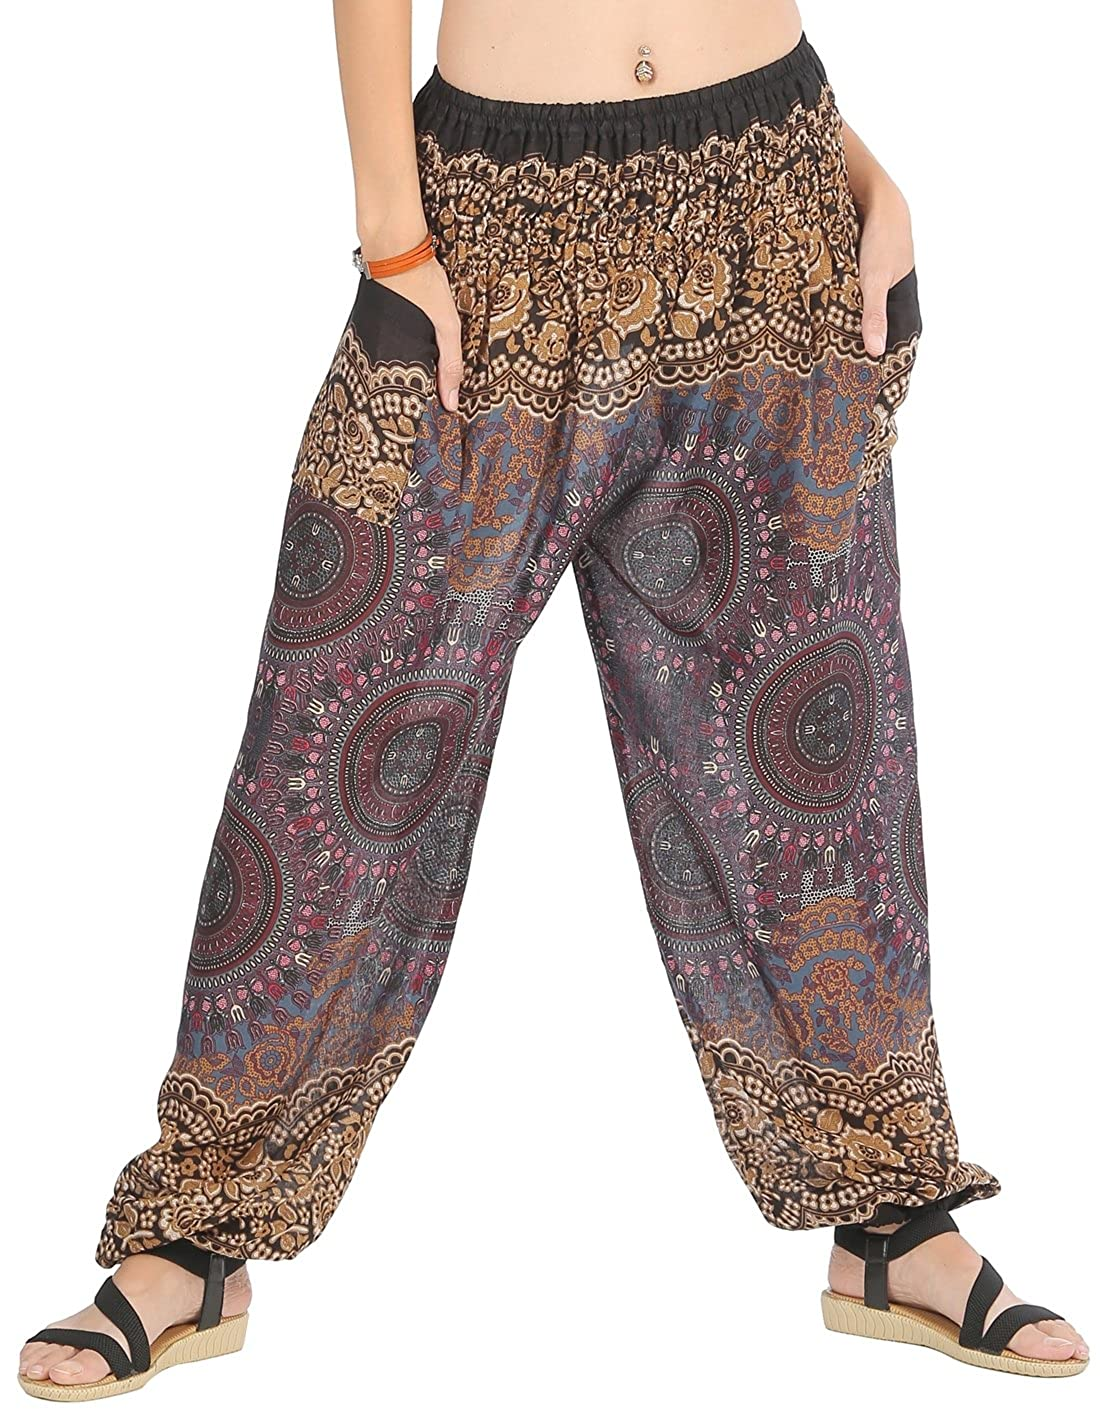 359dad60ce4fe2 BREATHABLE, SILKY SOFT RAYON FABRIC: Made out of a rayon fabric, CandyHusky printed  harem pants are silkier, softer & smoother than your average loose fit ...